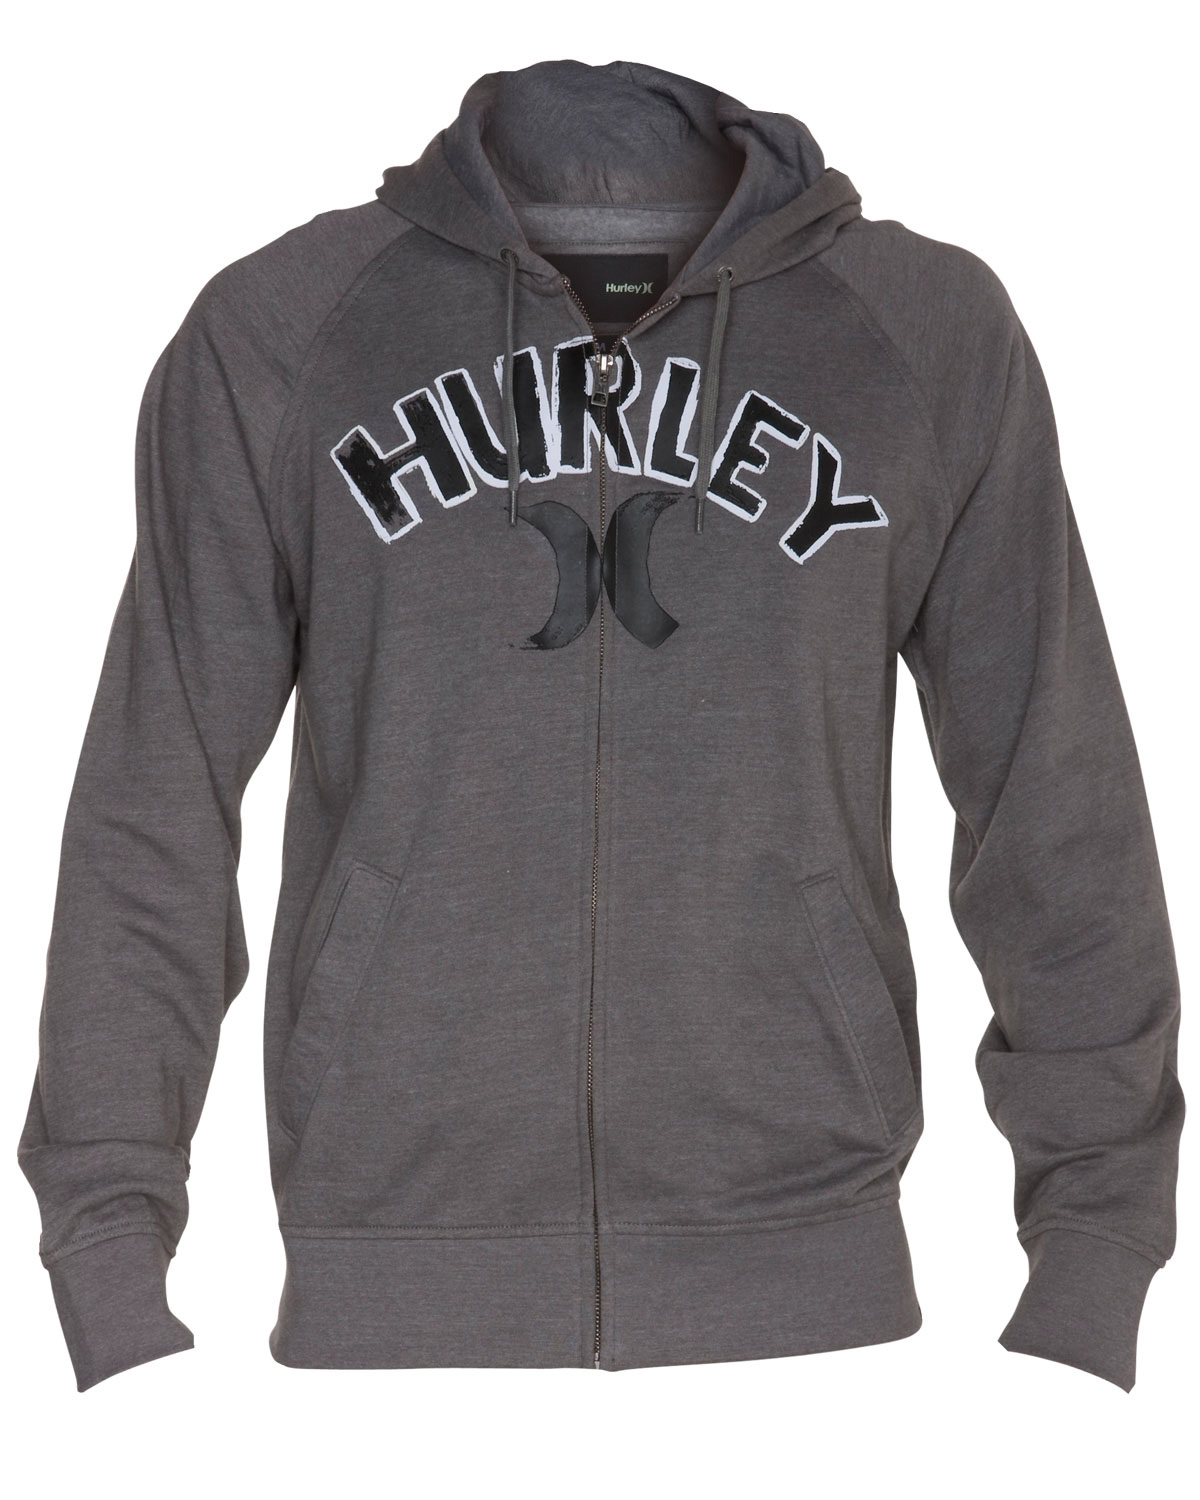 Surf Key Features of the Hurley Unwritten Zip Hoodie: Raglan sleeve full zip hoodie 60% cotton/40% poly 240gm Front chest Hurley high density print - $41.95